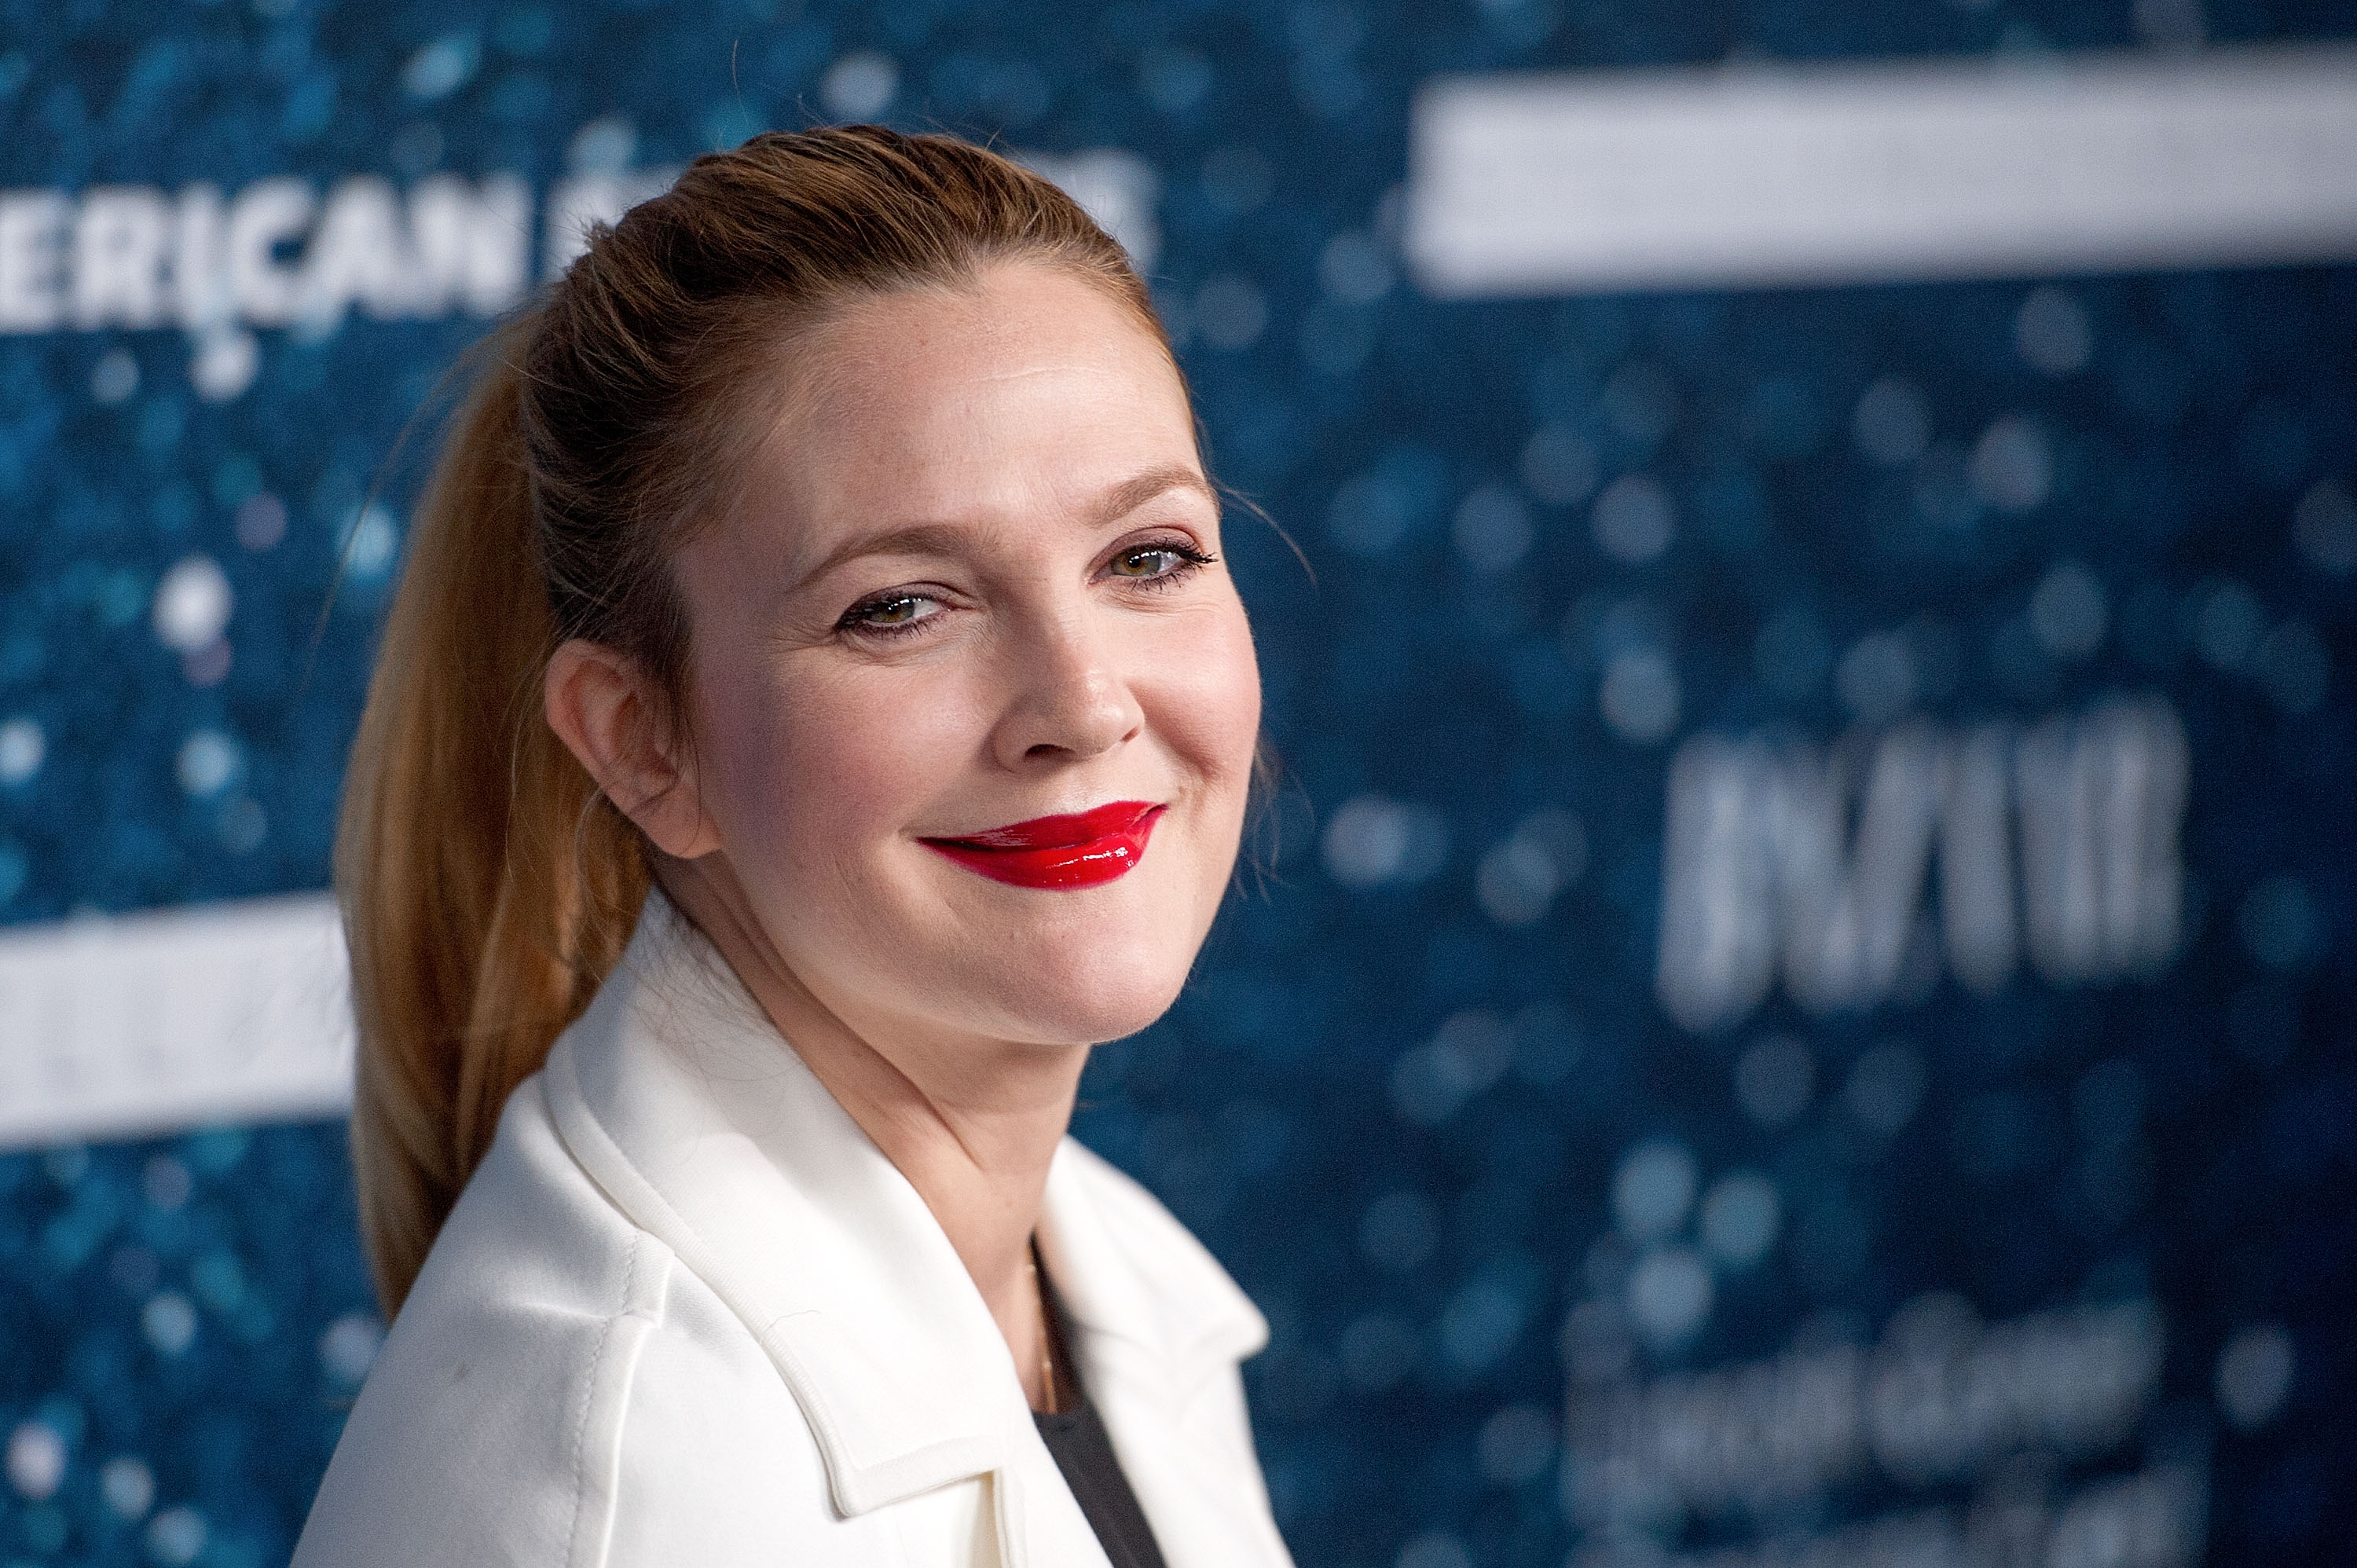 Image Credits: Getty Images / D Dipasupil / FilmMagic | Drew Barrymore attends the 2014 Women's Leadership Award Honoring Stella McCartney at Alice Tully Hall at Lincoln Center on November 13, 2014 in New York City.